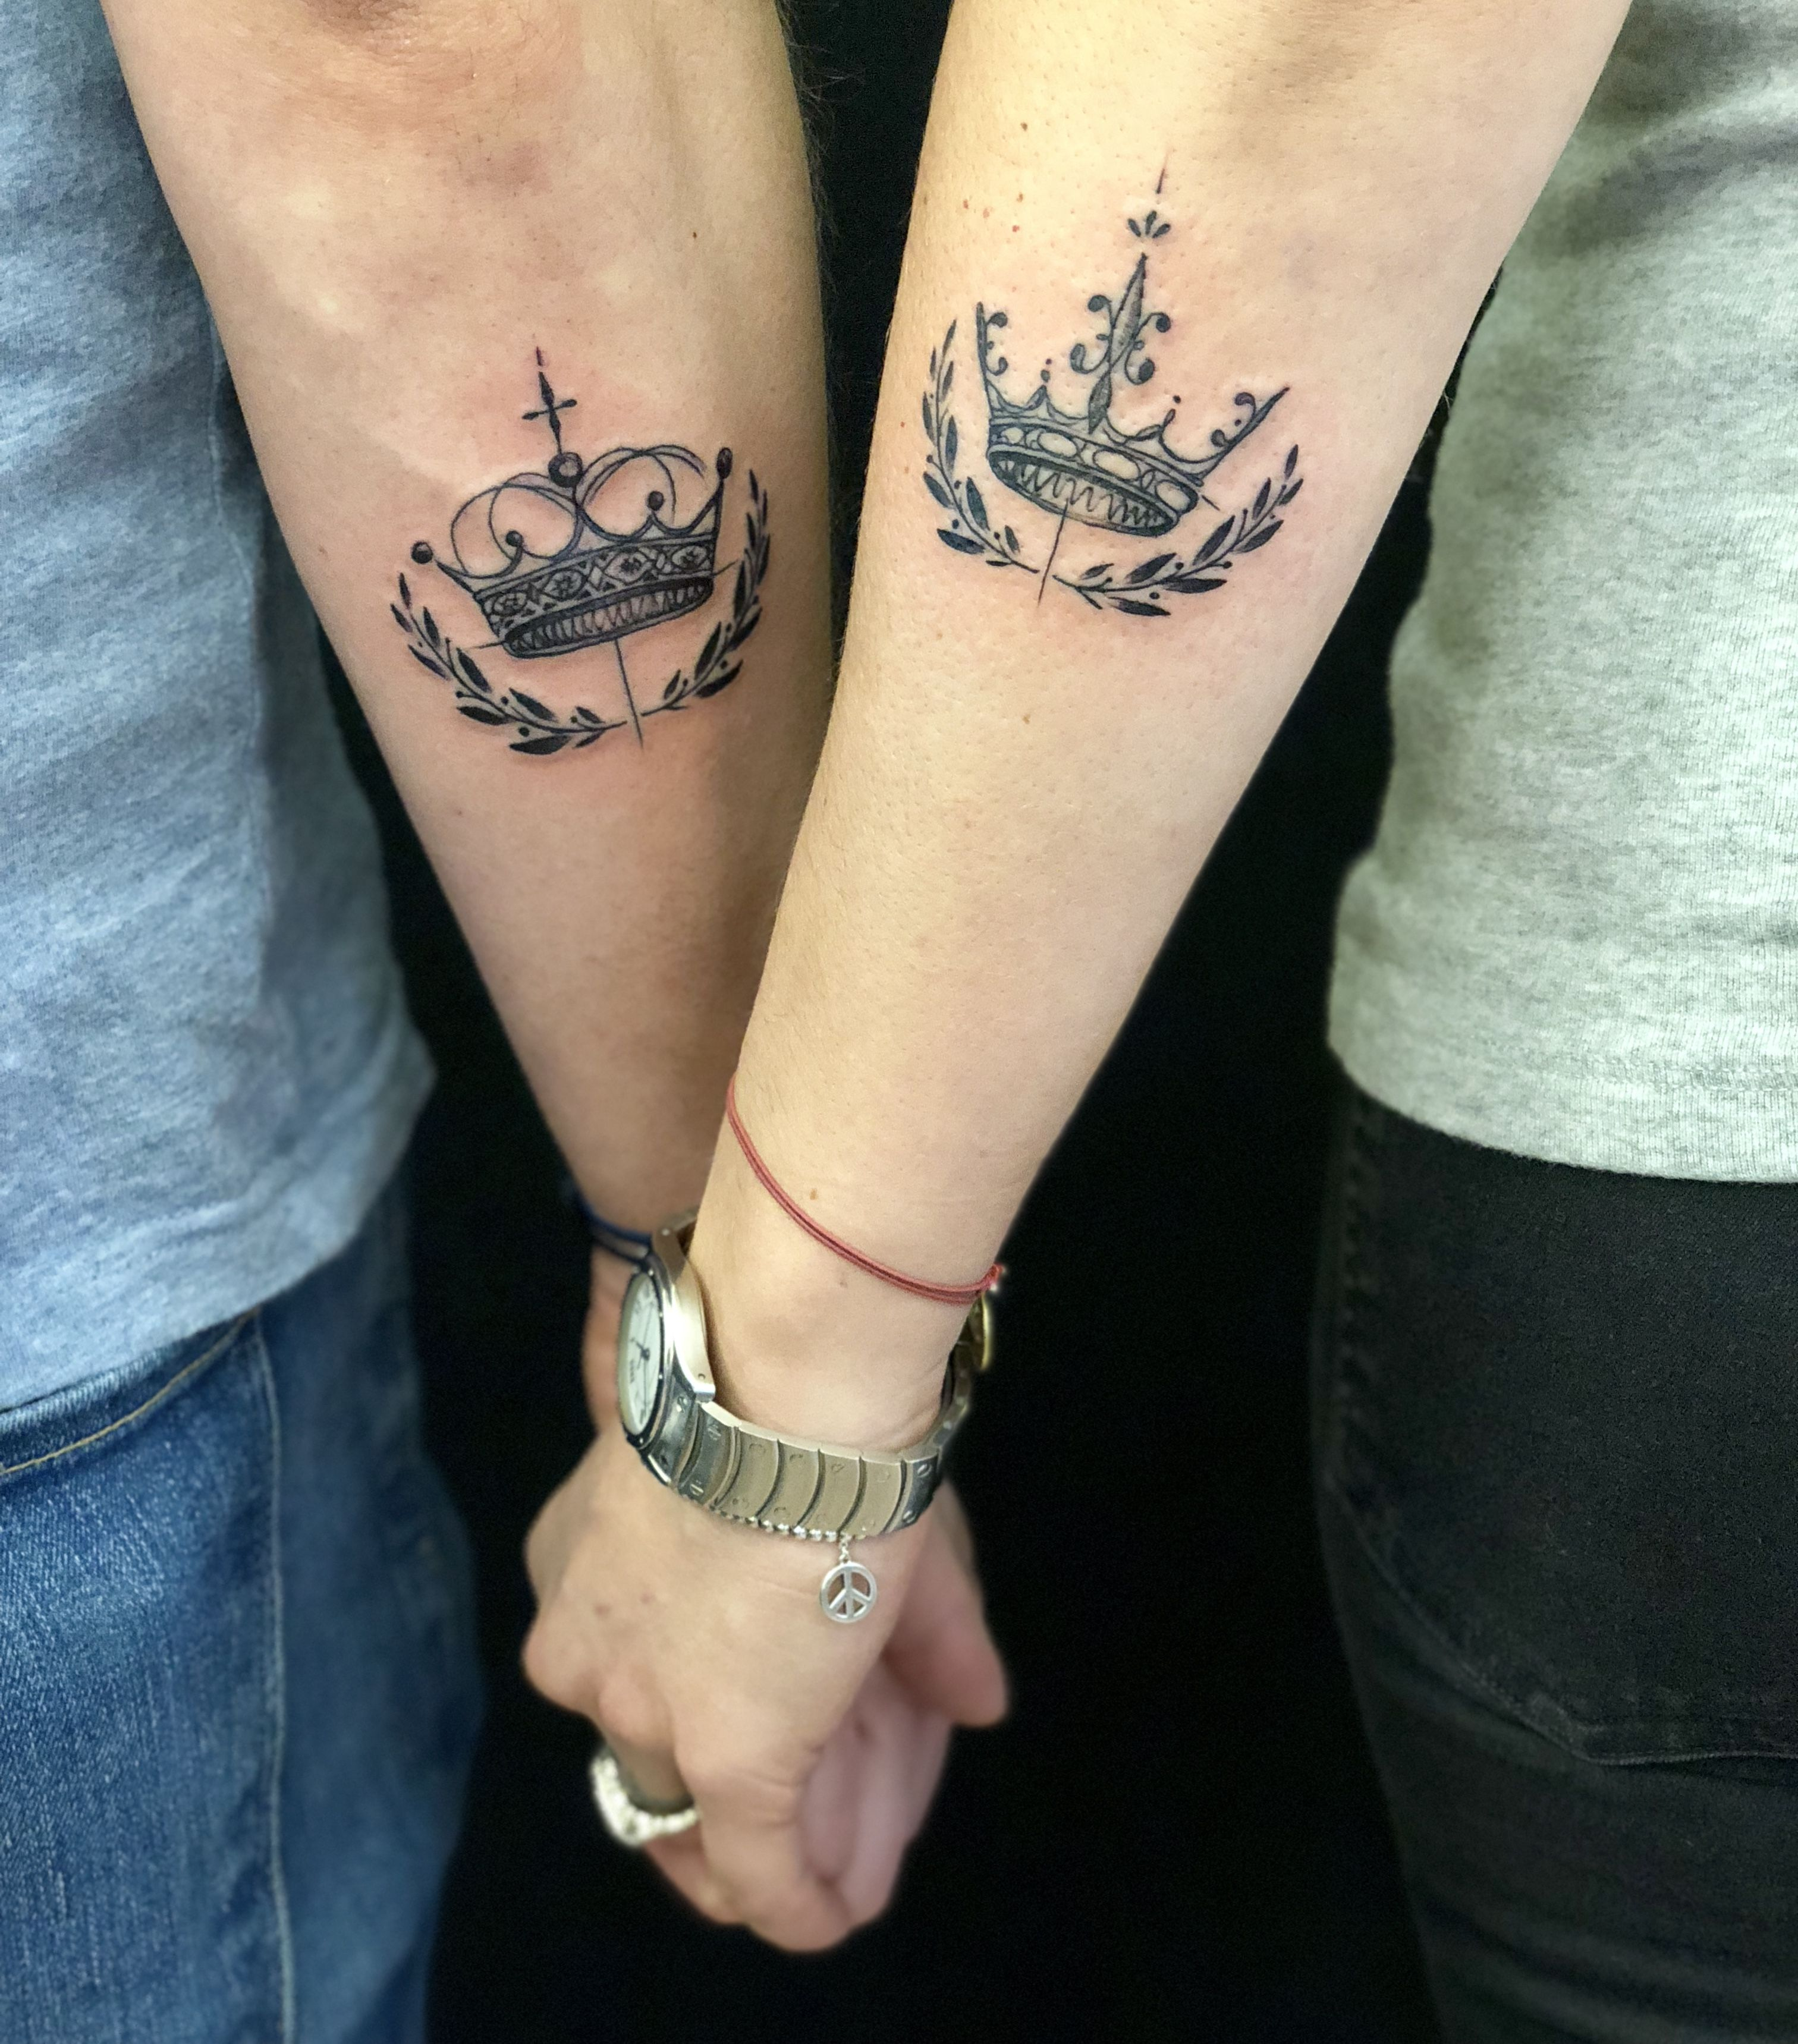 His and hers crowns. #sketchcrowns #hisandhers Couple ...